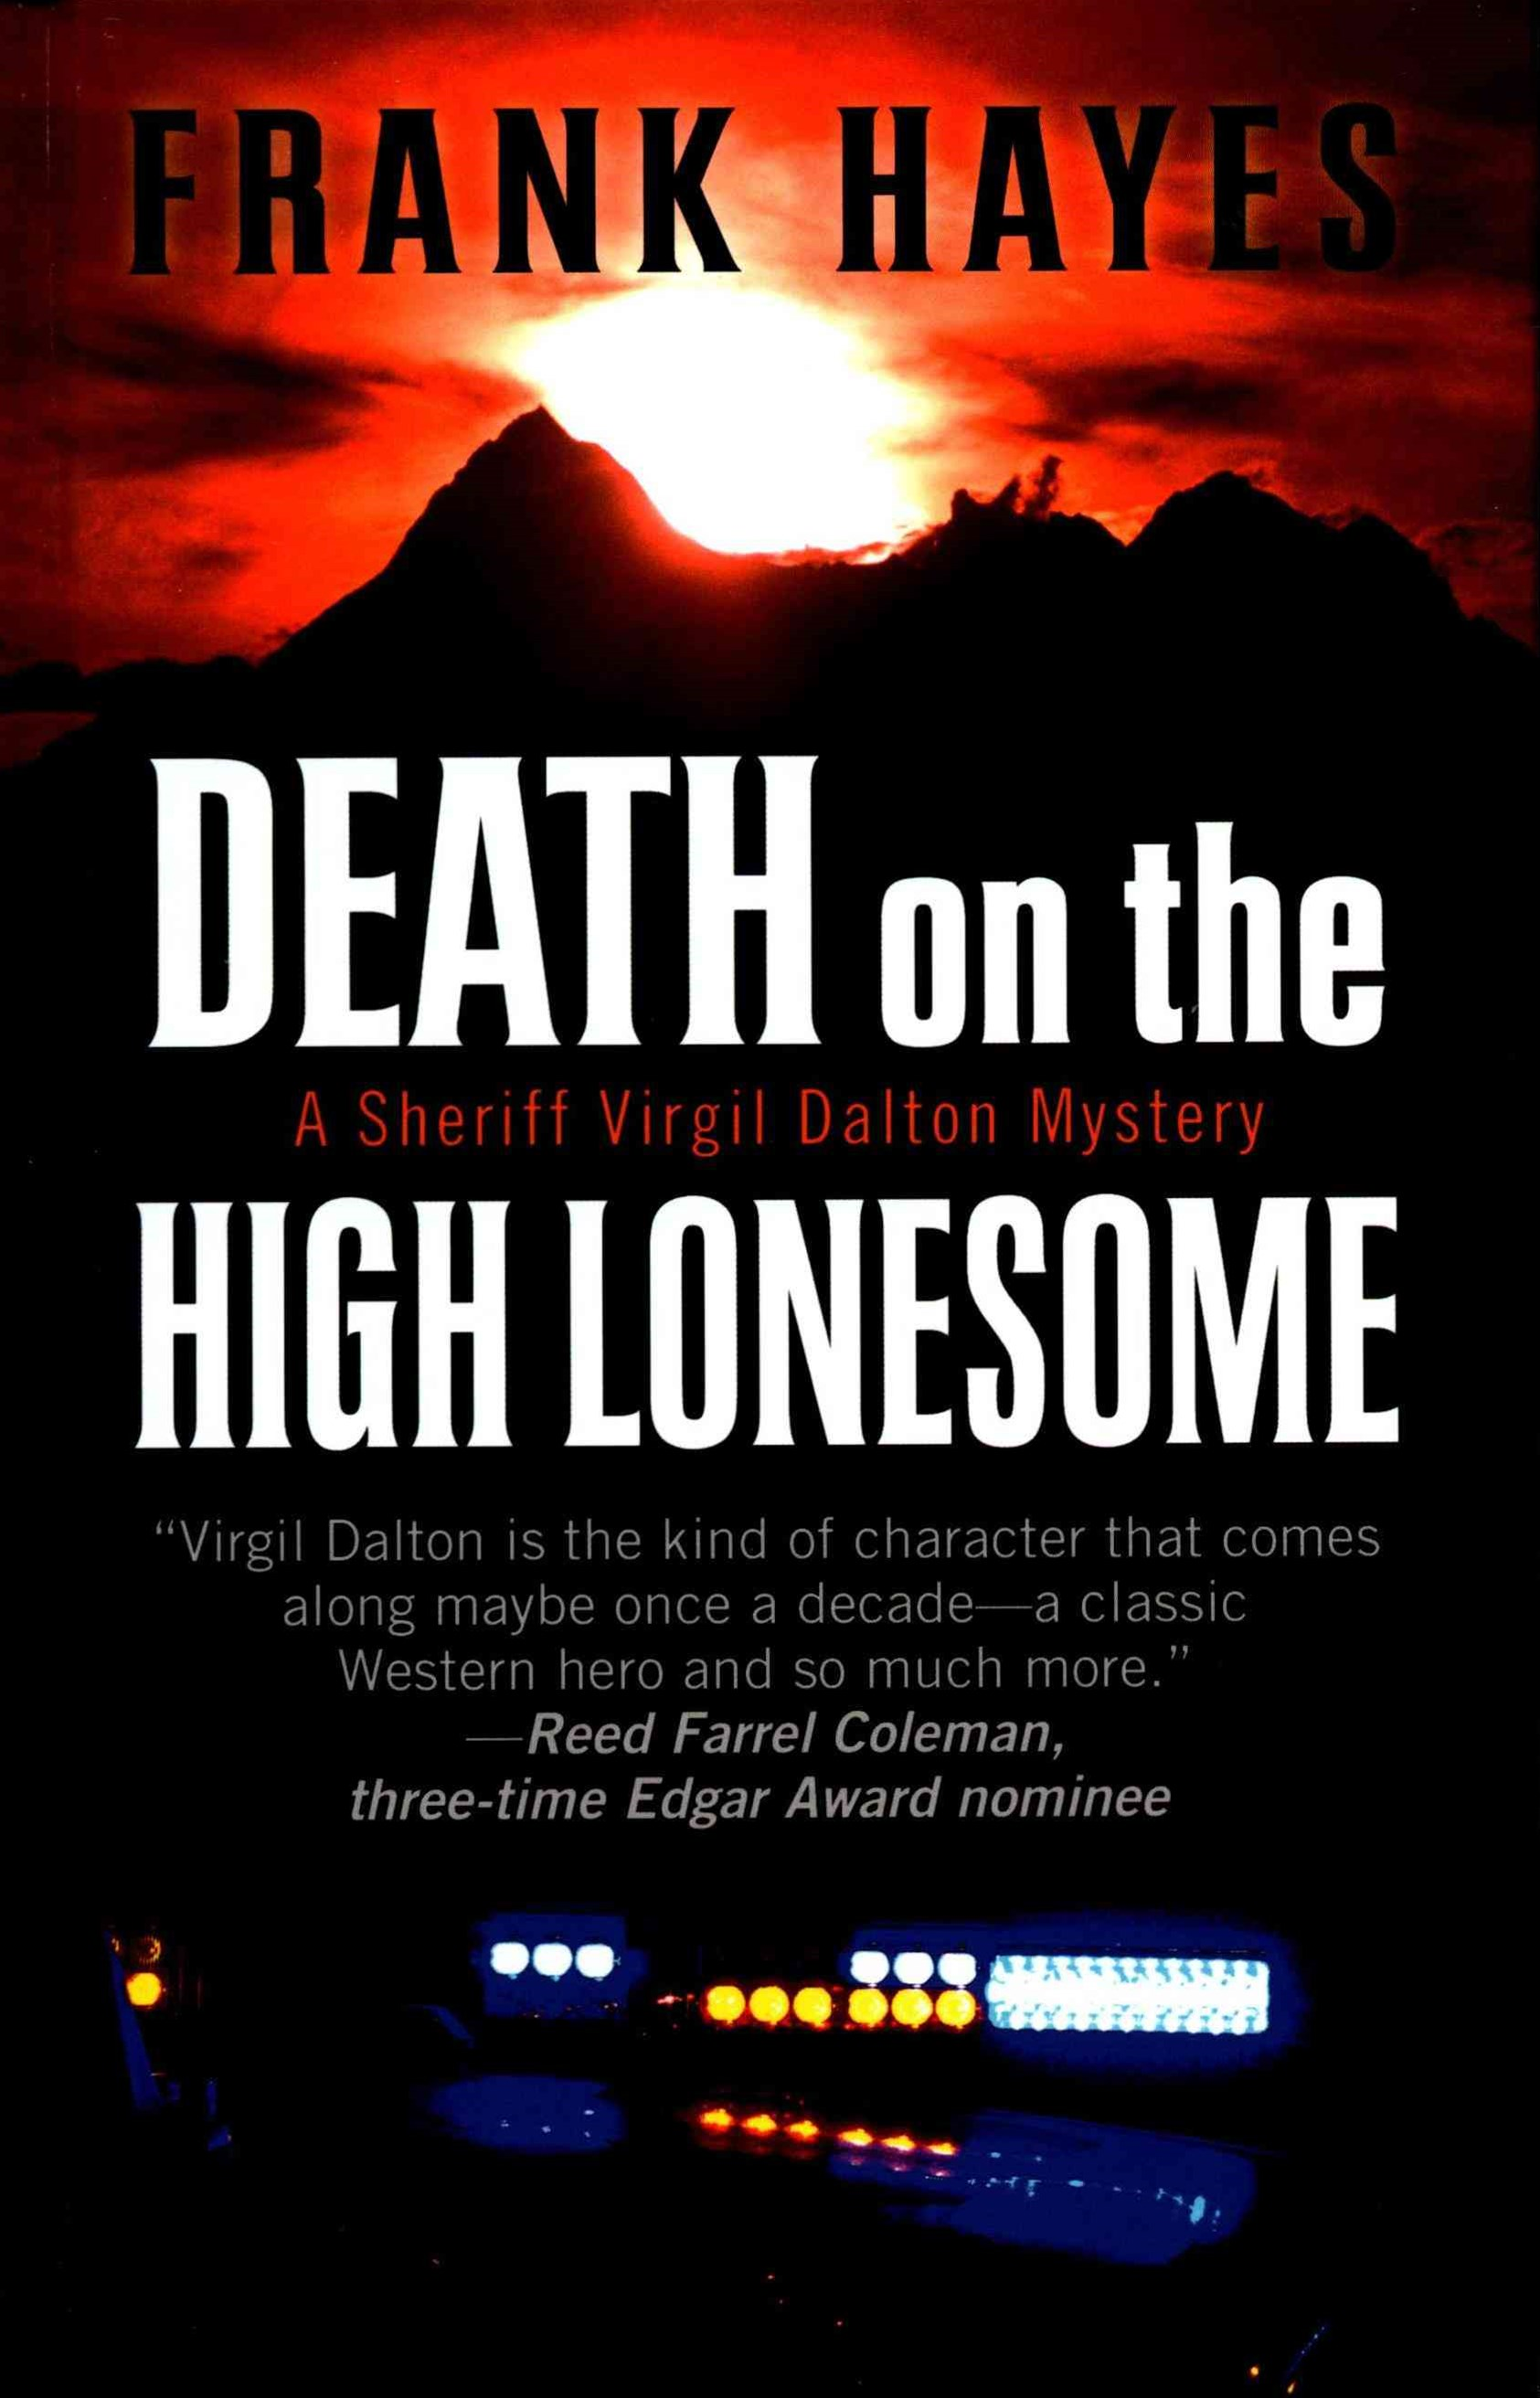 Death on the High Lonesome